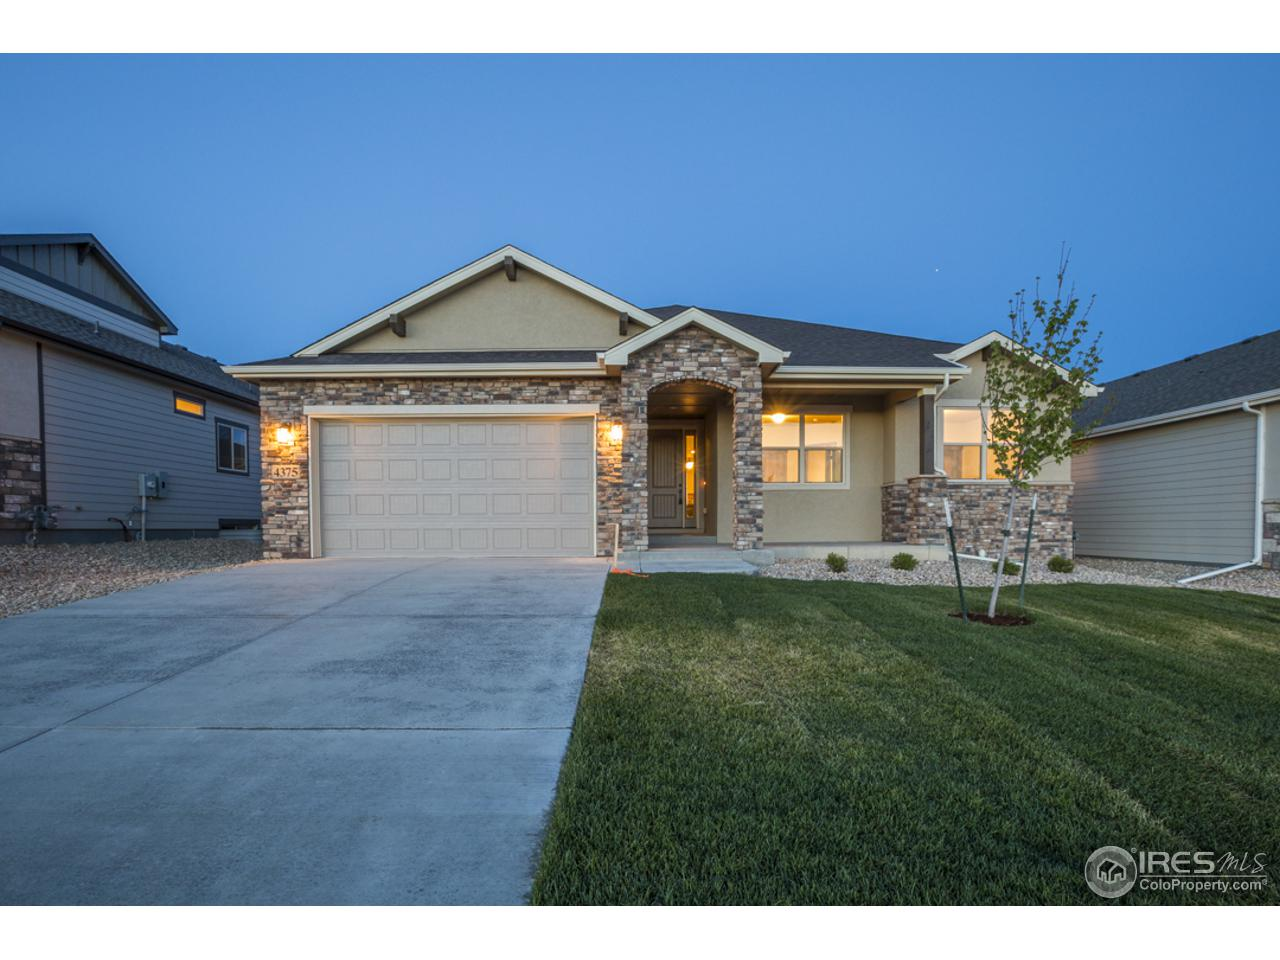 4375 Cicely Ct, Johnstown, CO 80534